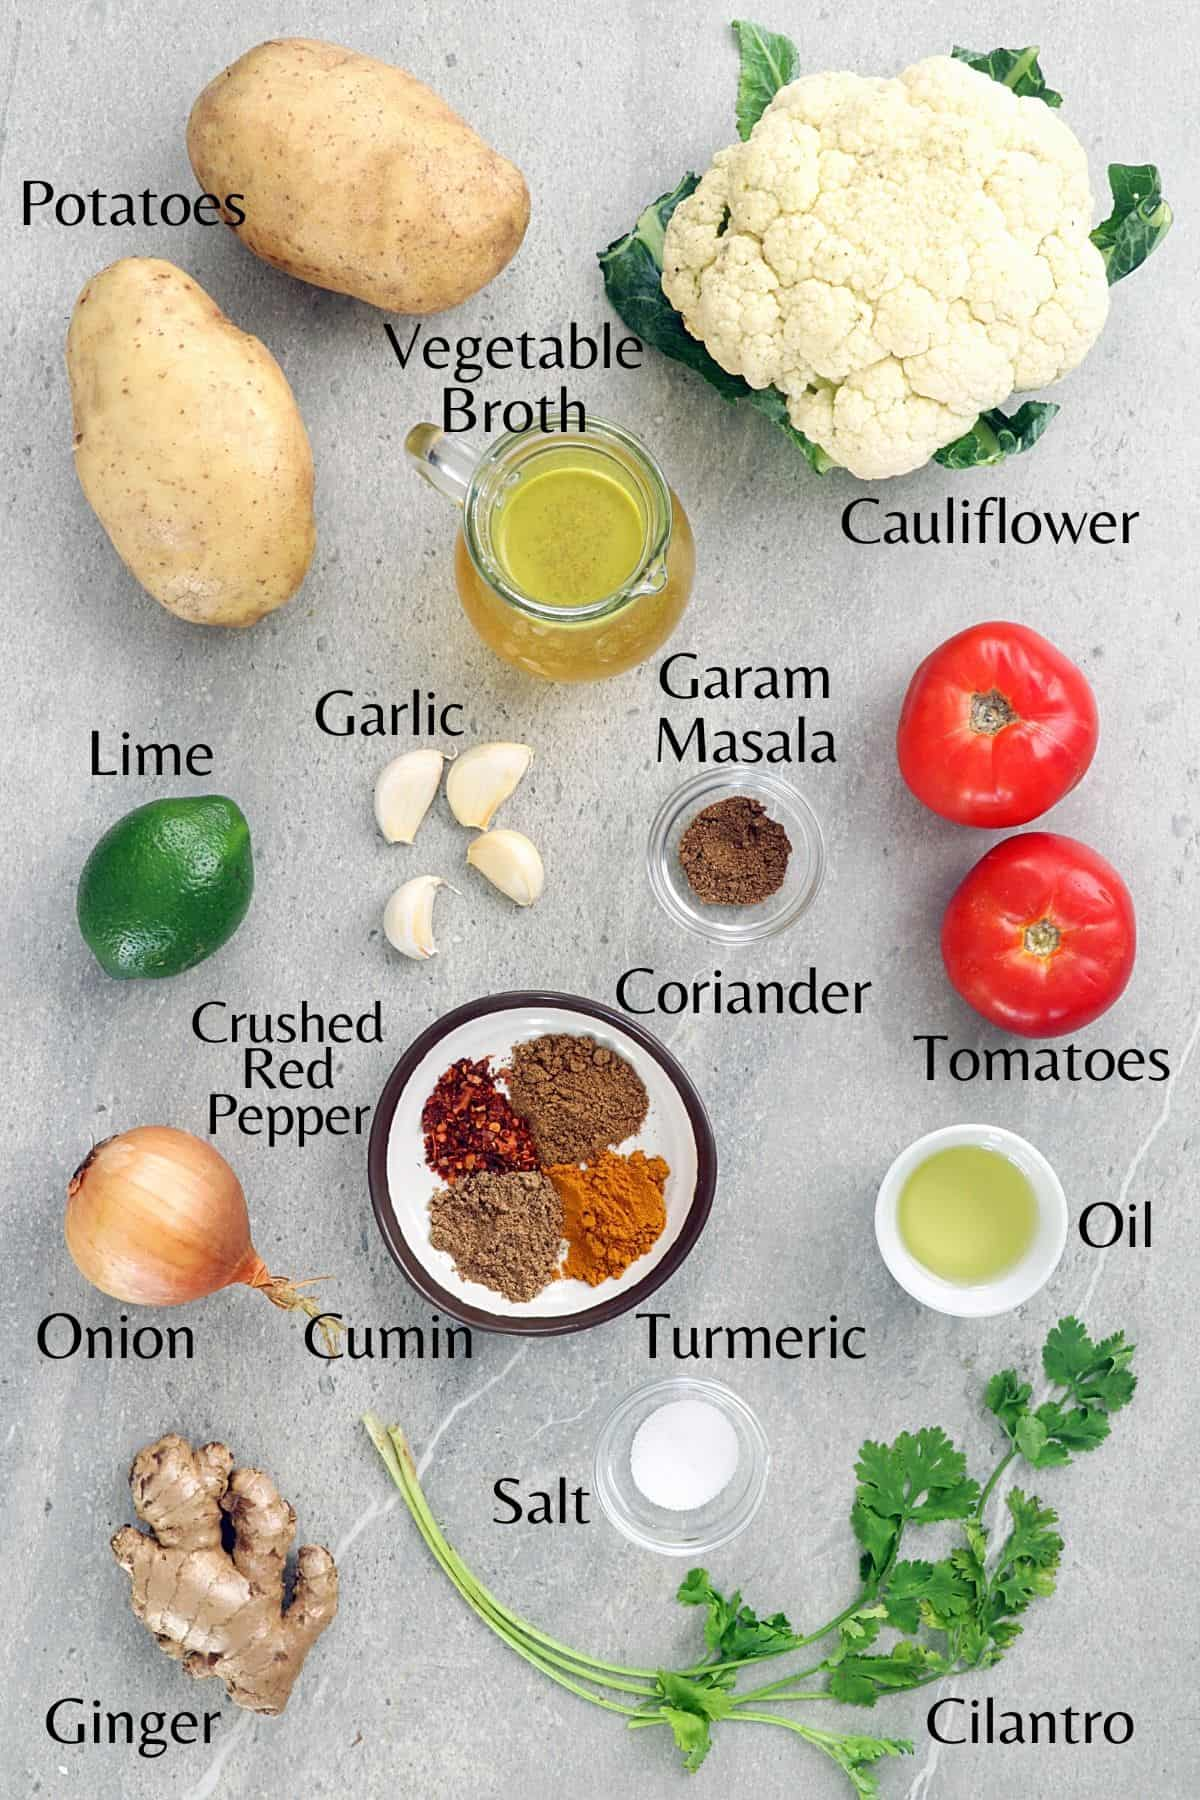 All ingredients to make the recipe on a stone table top.